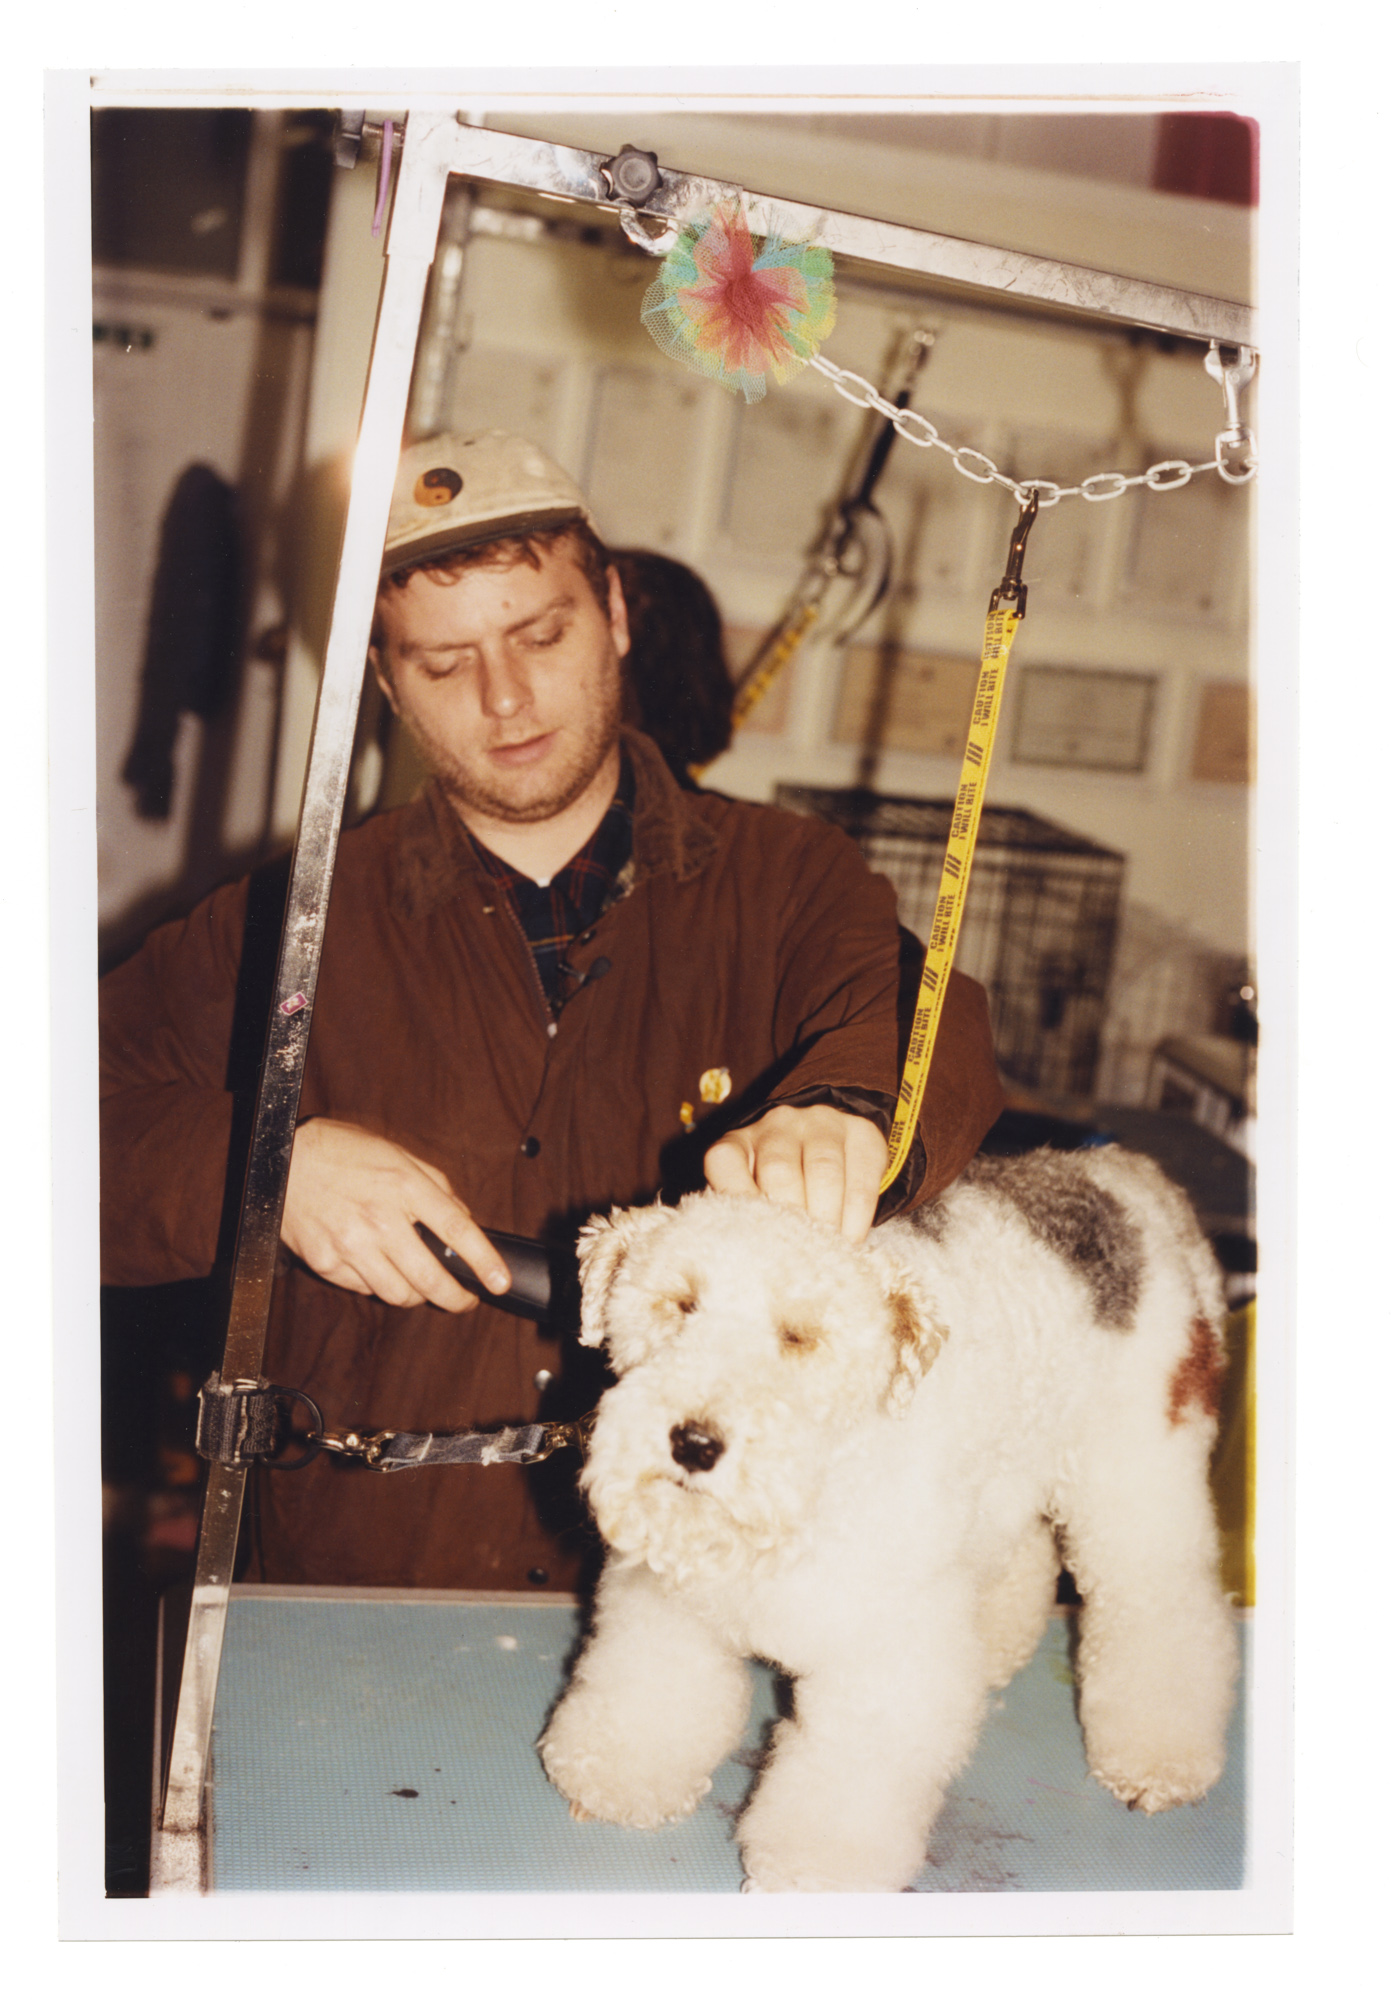 captured tracks independent record label crack linked up mac demarco as he gears up to release his new album this old dog on 5 performing the title track from the new lp mac cosies up